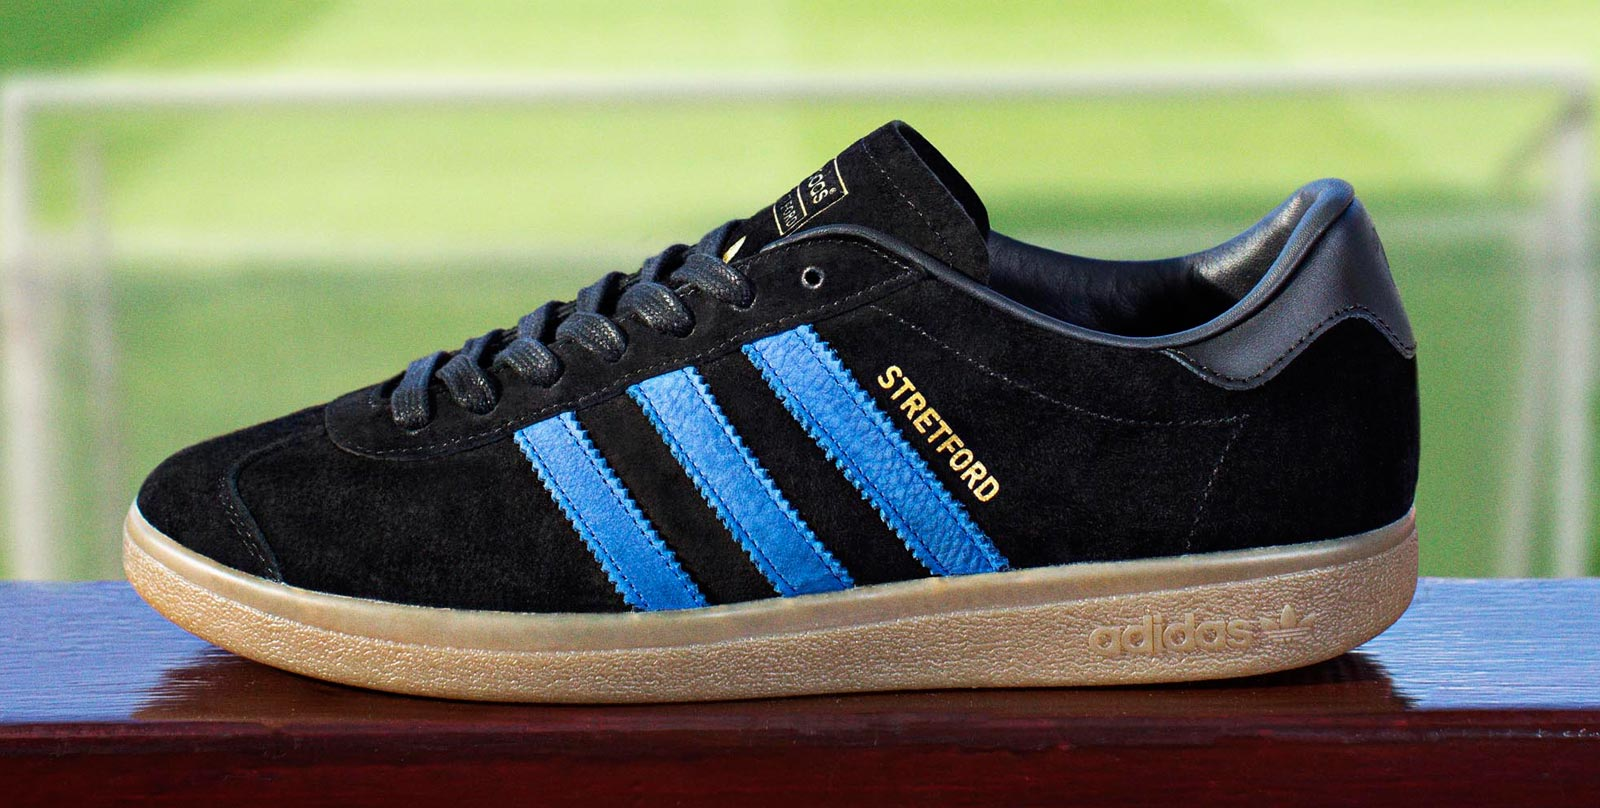 Adidas Original Trainers New Releases